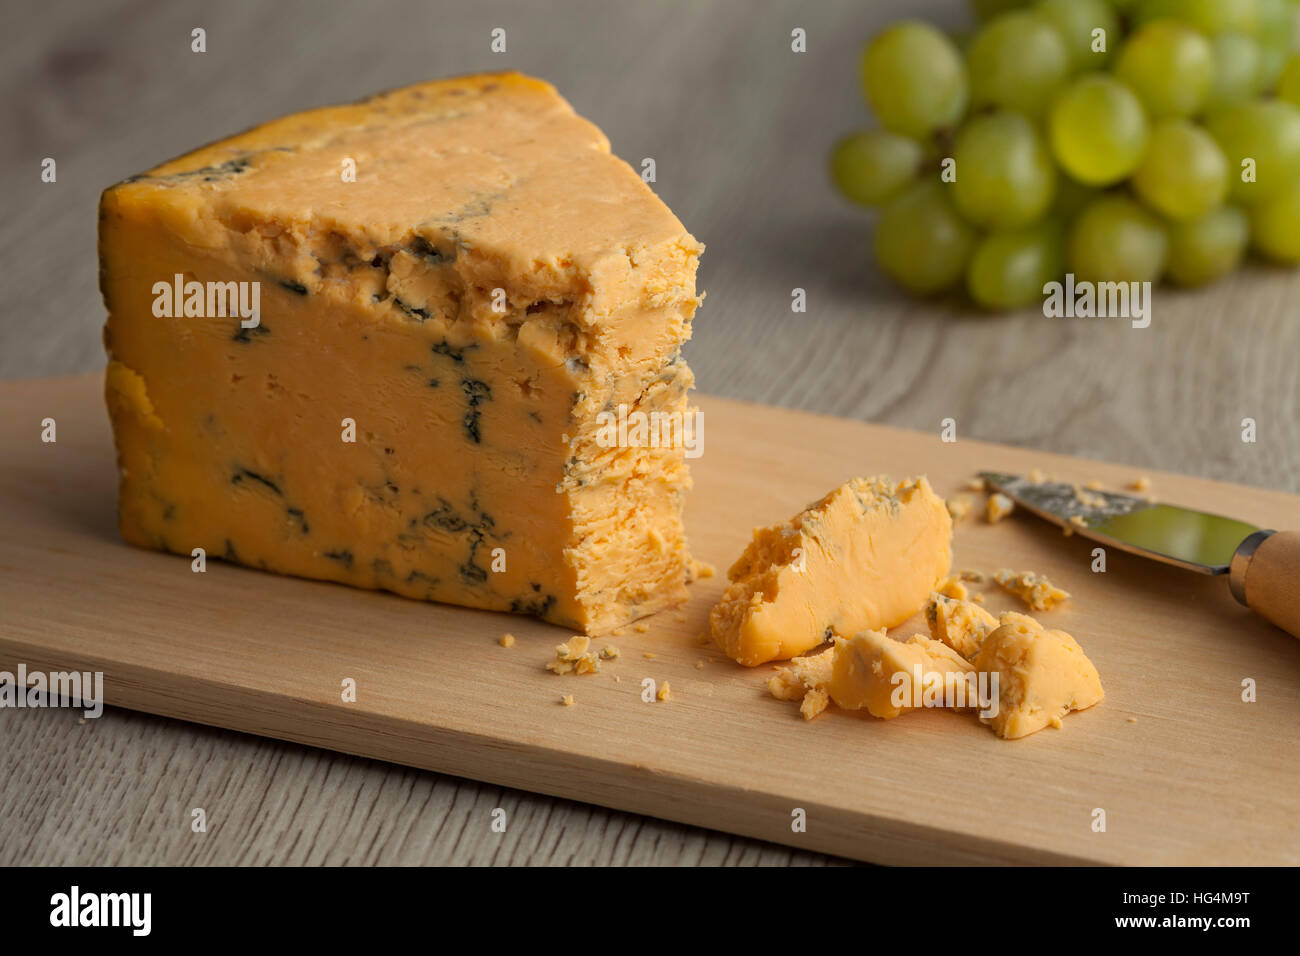 Piece of Shropshire blue cheese isolated on white background - Stock Image